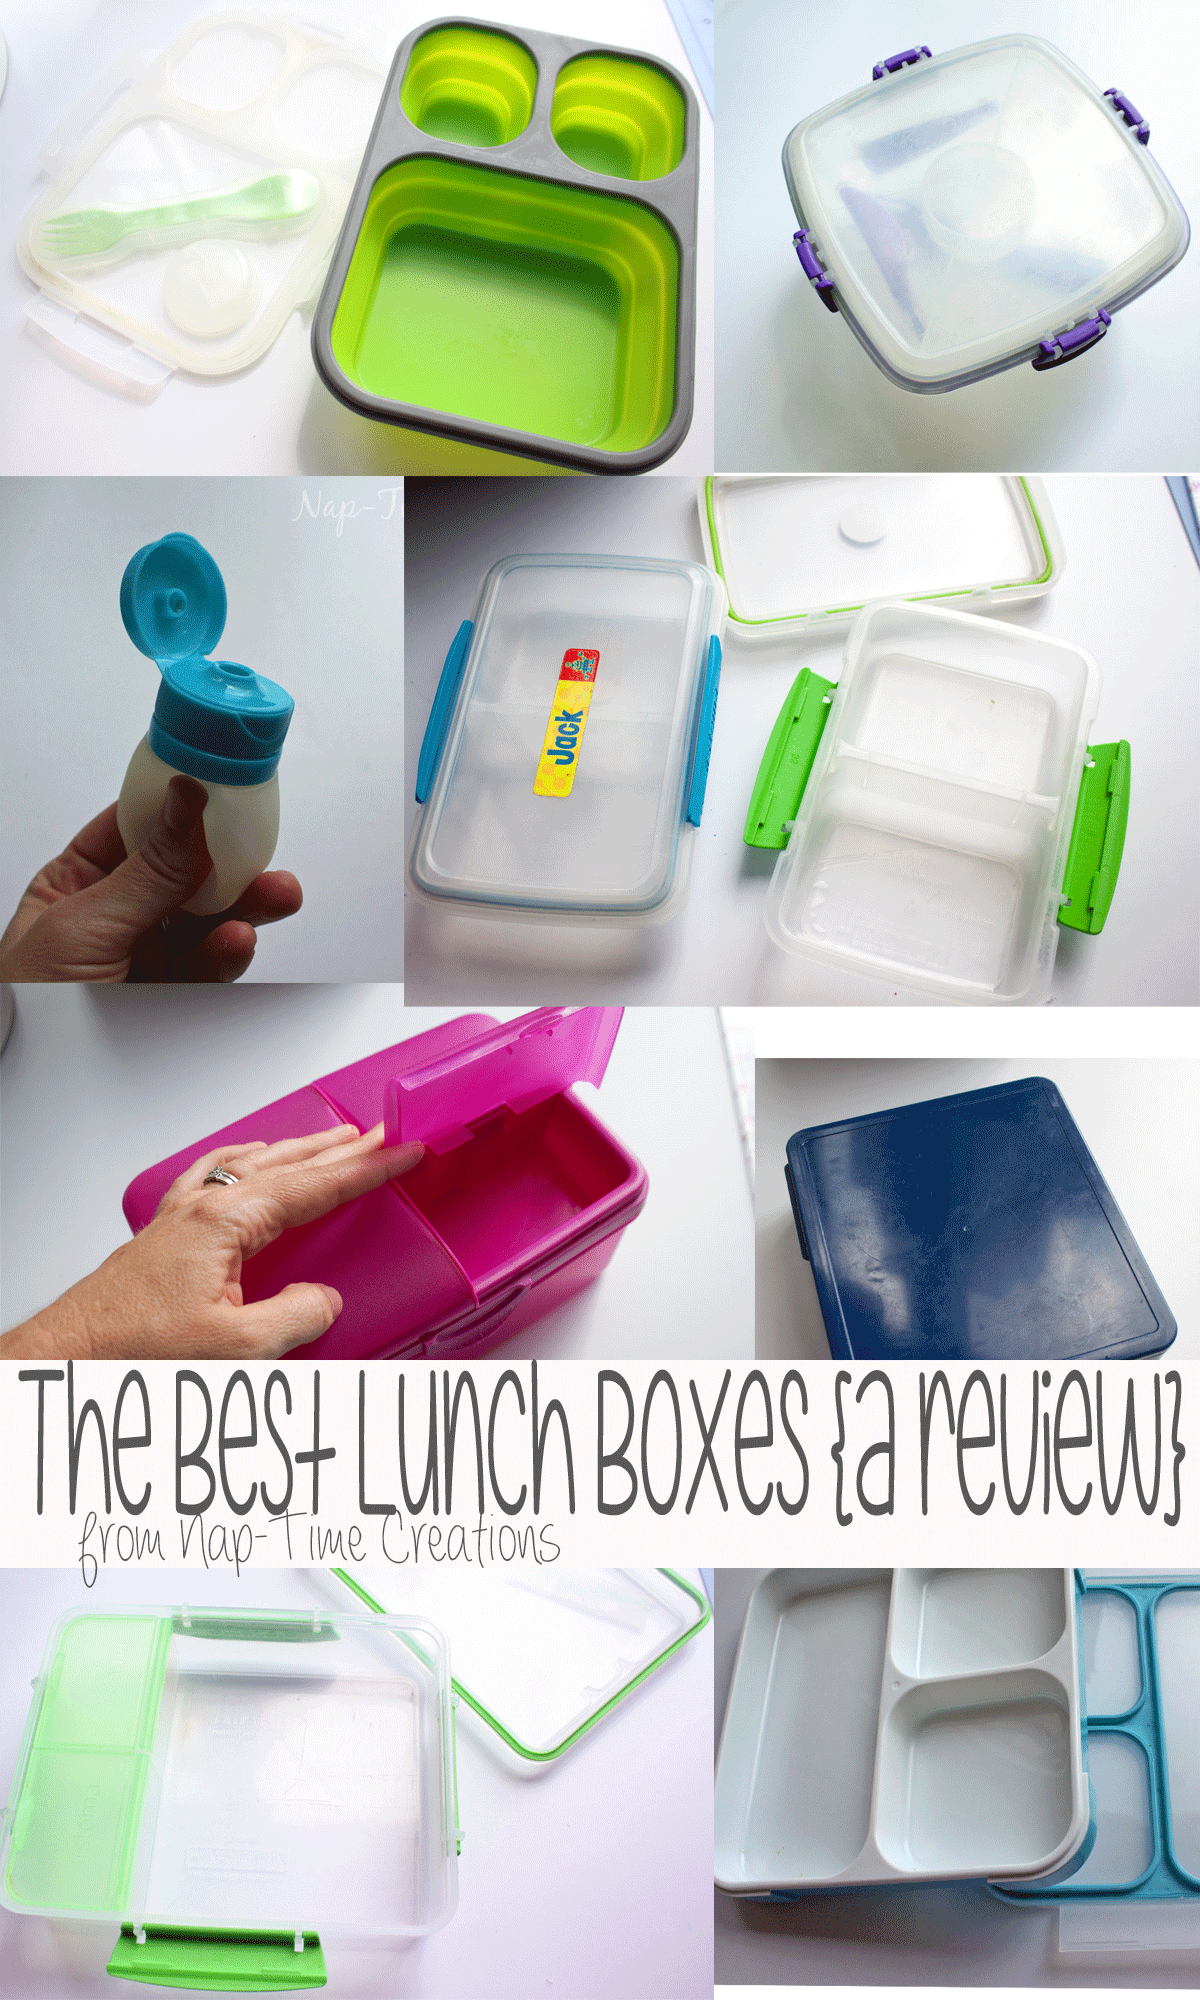 The best school lunch boxes review from Life Sew Savory